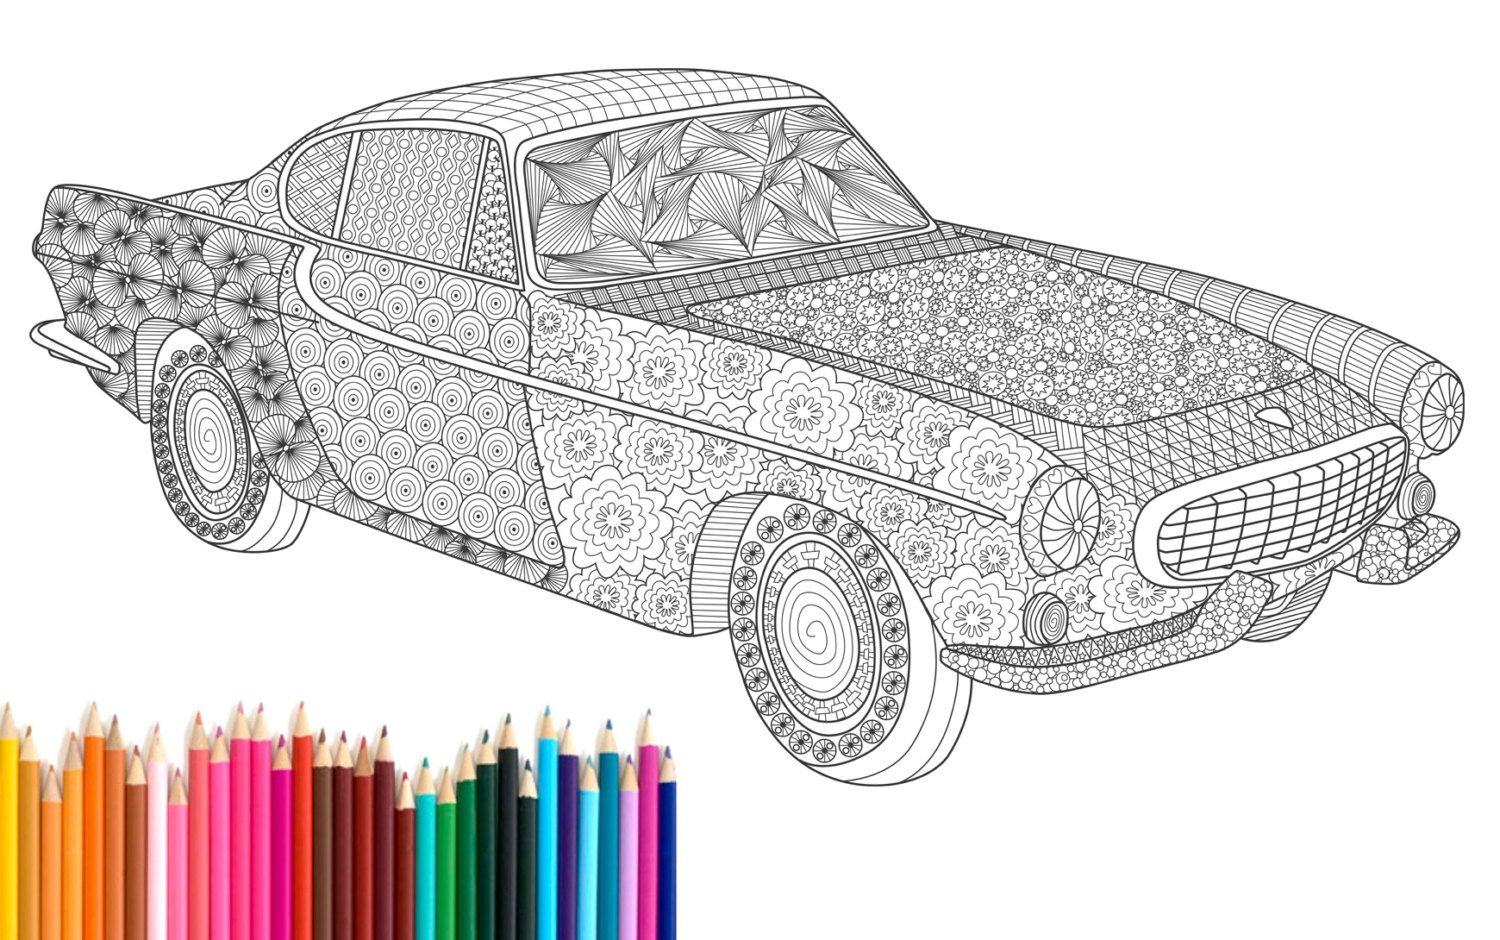 Pdf printable adult coloring page zentangle volvo p1800 oldtimer poster instant download zendoodle car unique art drawing ink by recyman on etsy